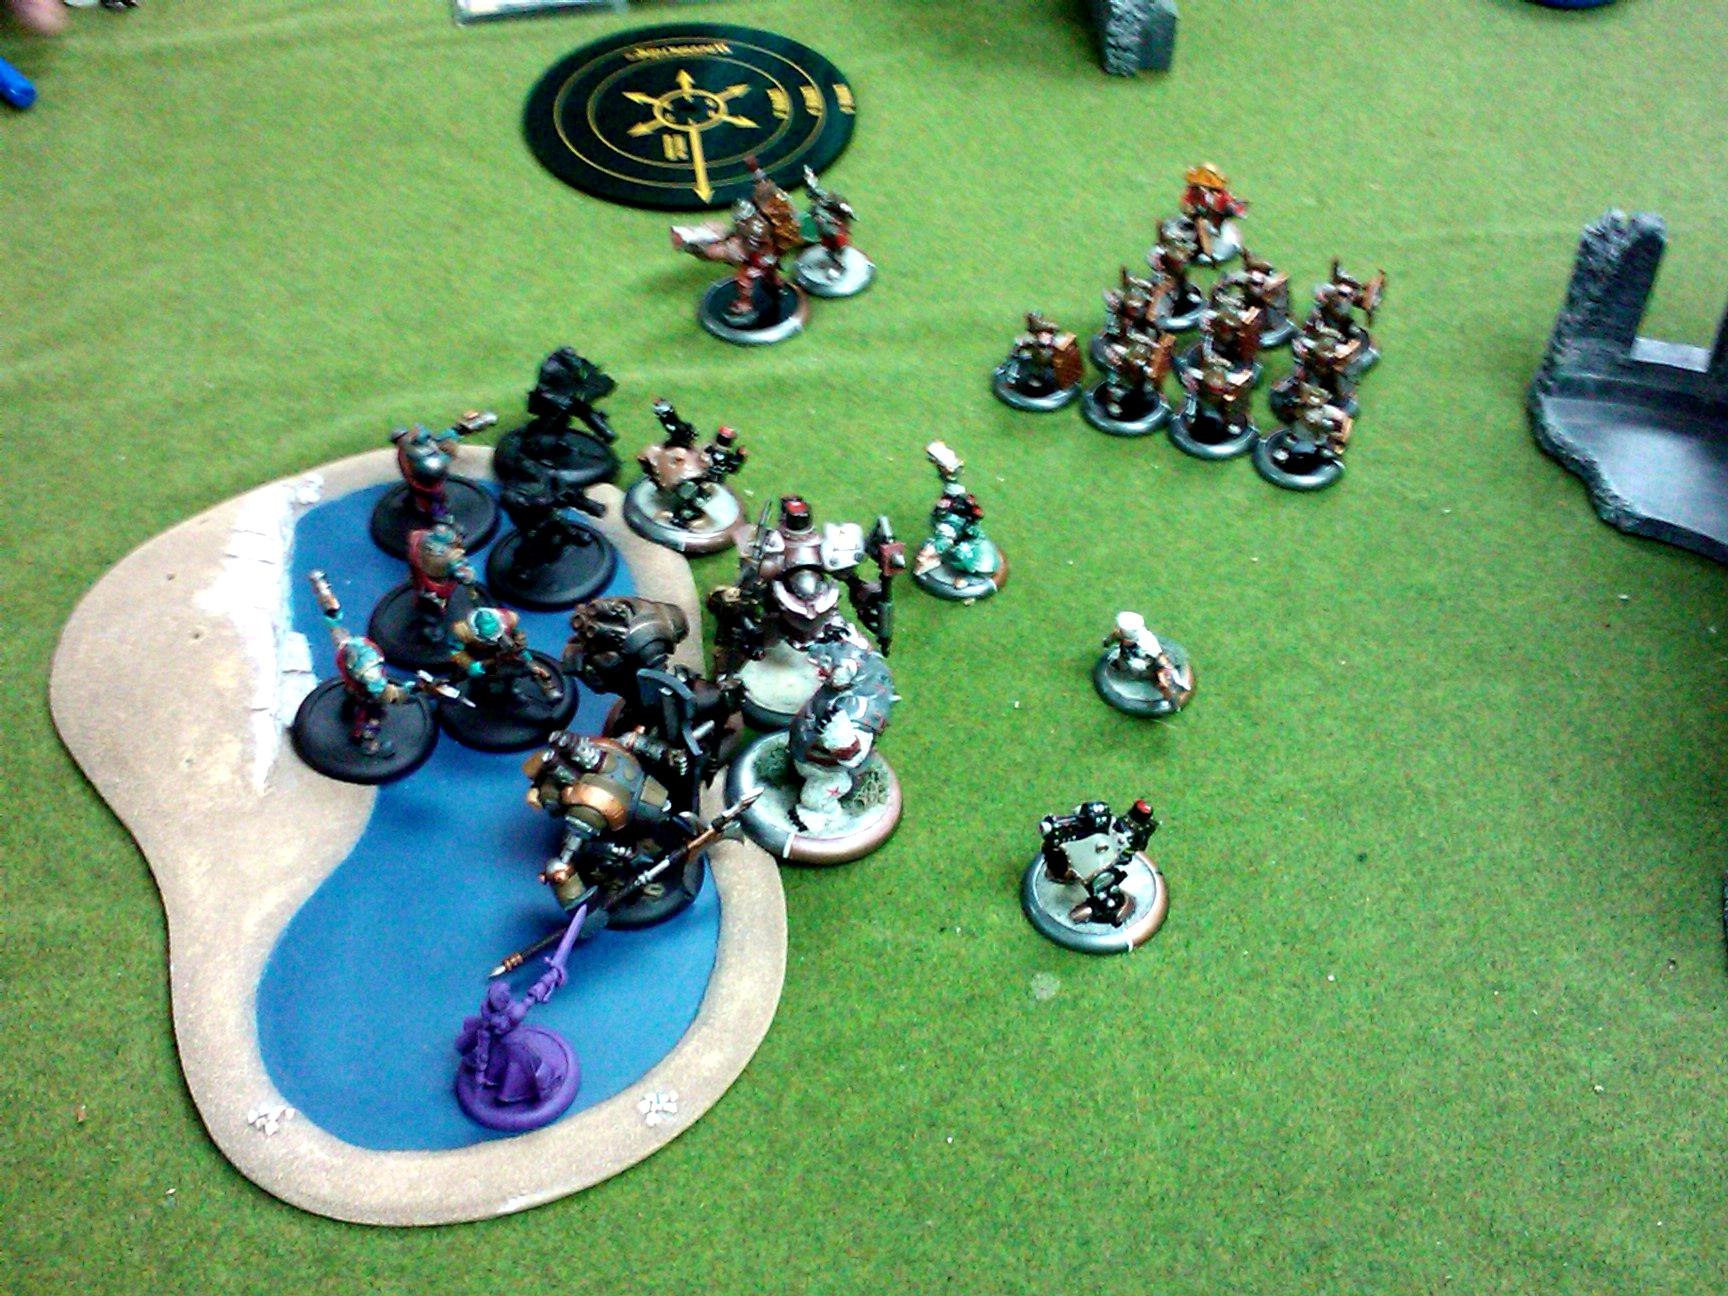 Battle Box, Battle Group, Circle, Circle Of Orobos, Cygnar, Design, Hordes, Mercenary, Orobos, Painting, Privateer Press, Protectorate Of Menoth, Table Top, War Caster, War Game, War Jack, War Pack, Warcaster, Warjack, Warlock, Warmachine, Warpack